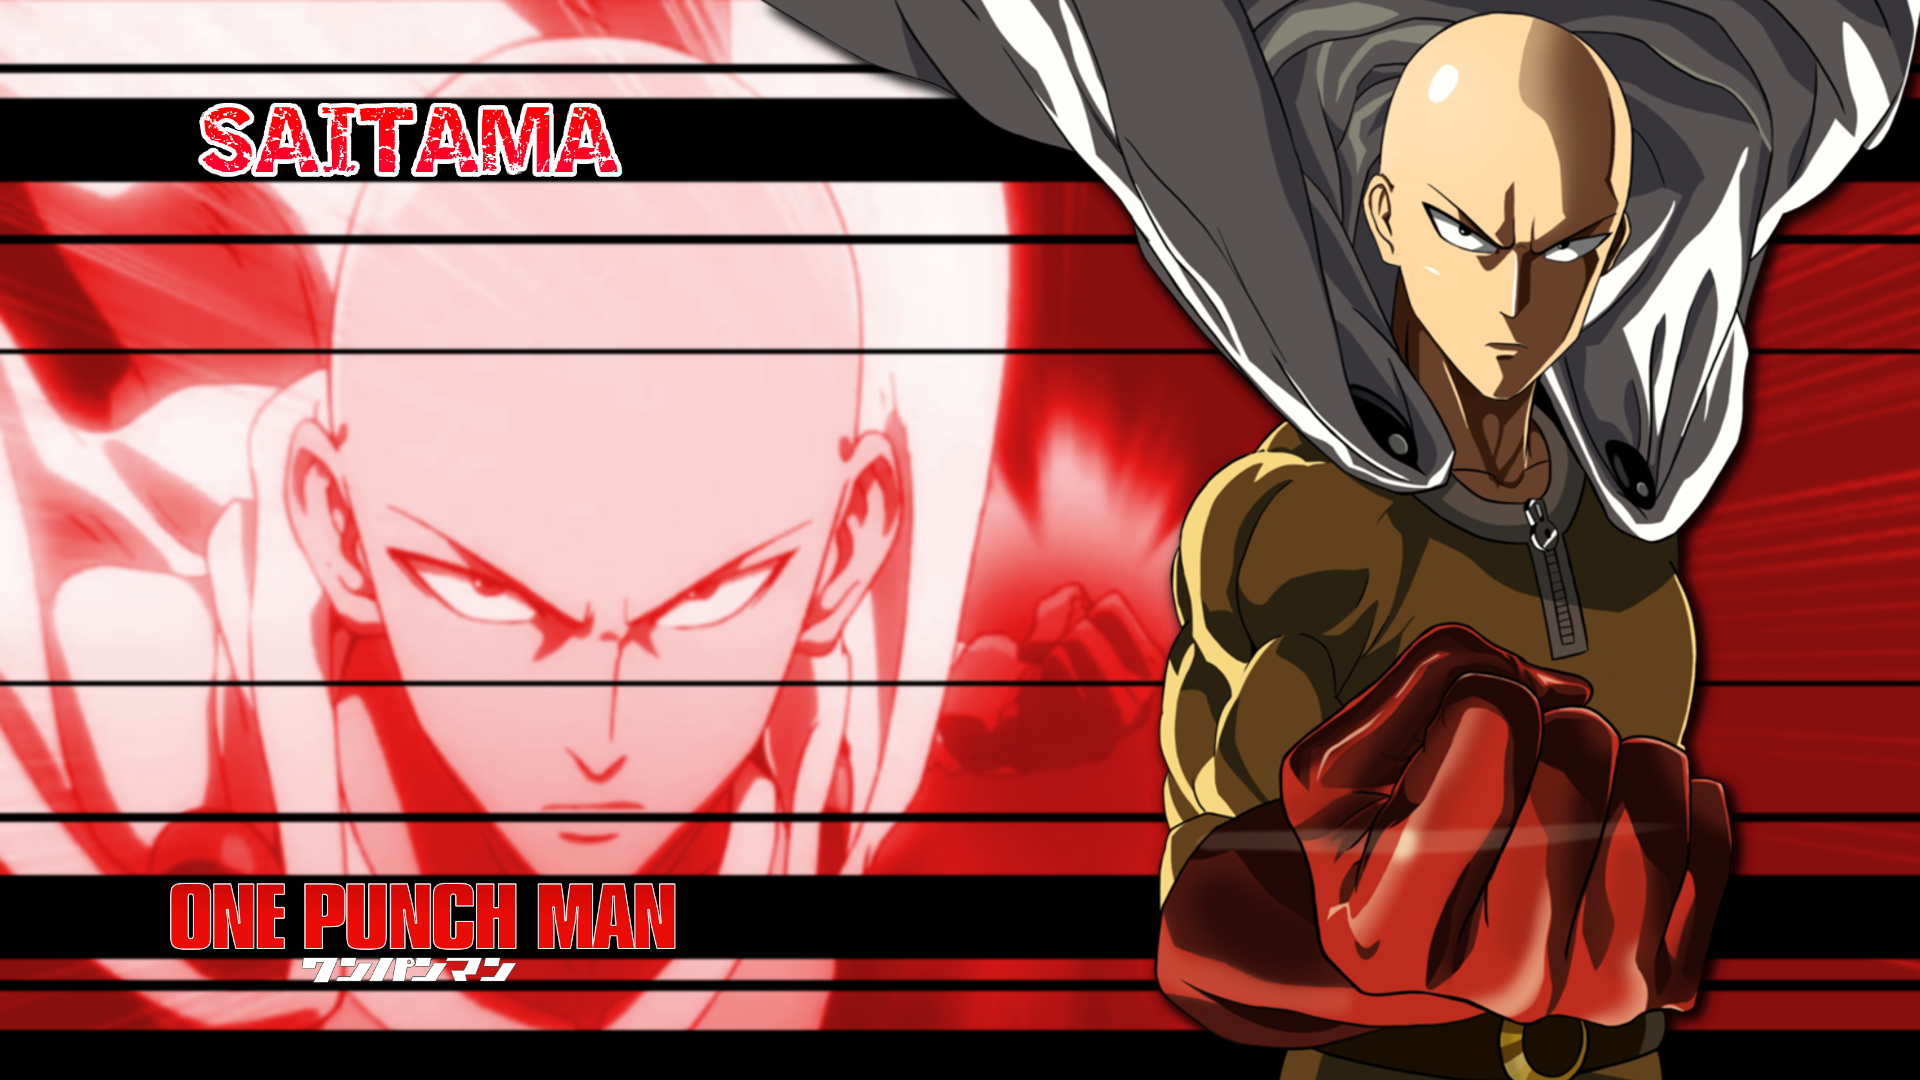 Free Download One Punch Man Saitama Wallpaper6 1920x1080 For Your